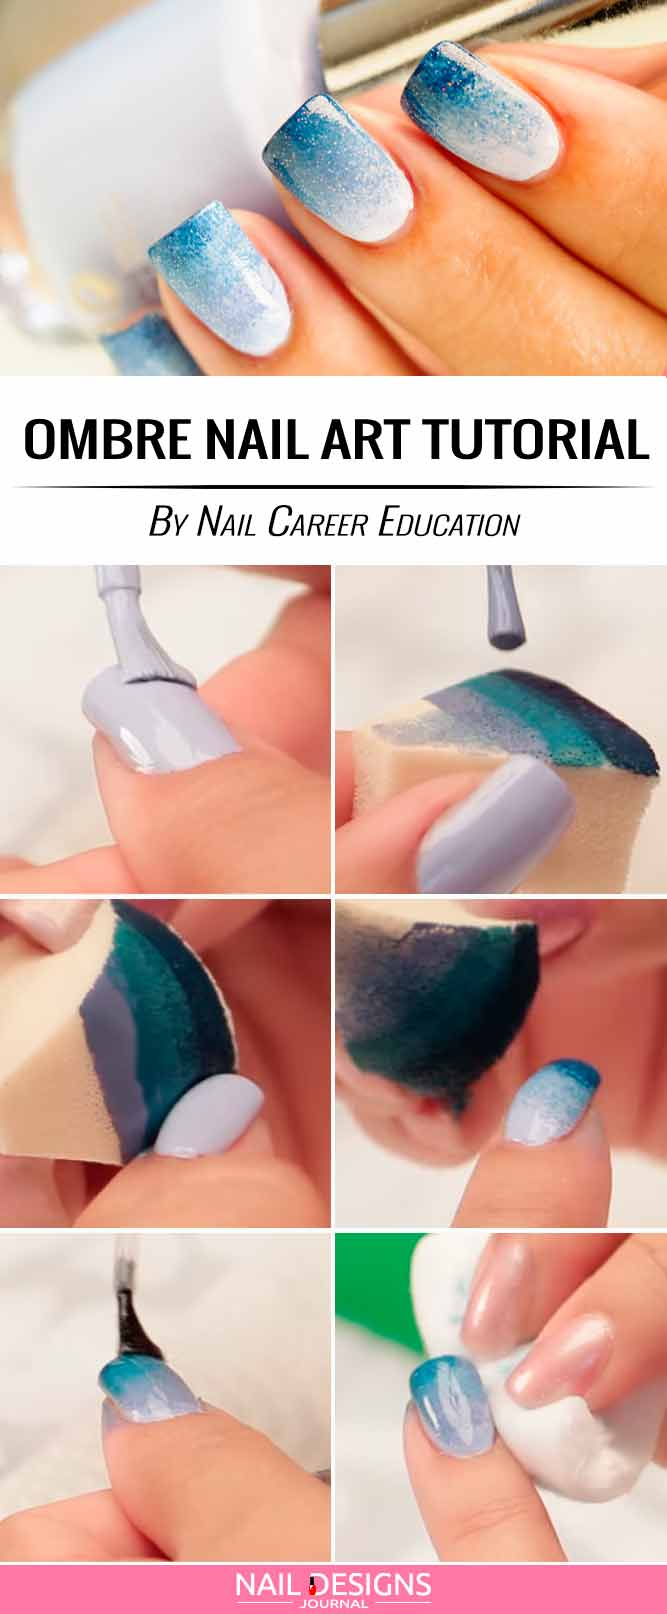 15 super easy nail designs diy tutorials crazyforus 15 super easy nail designs diy tutorials prinsesfo Gallery